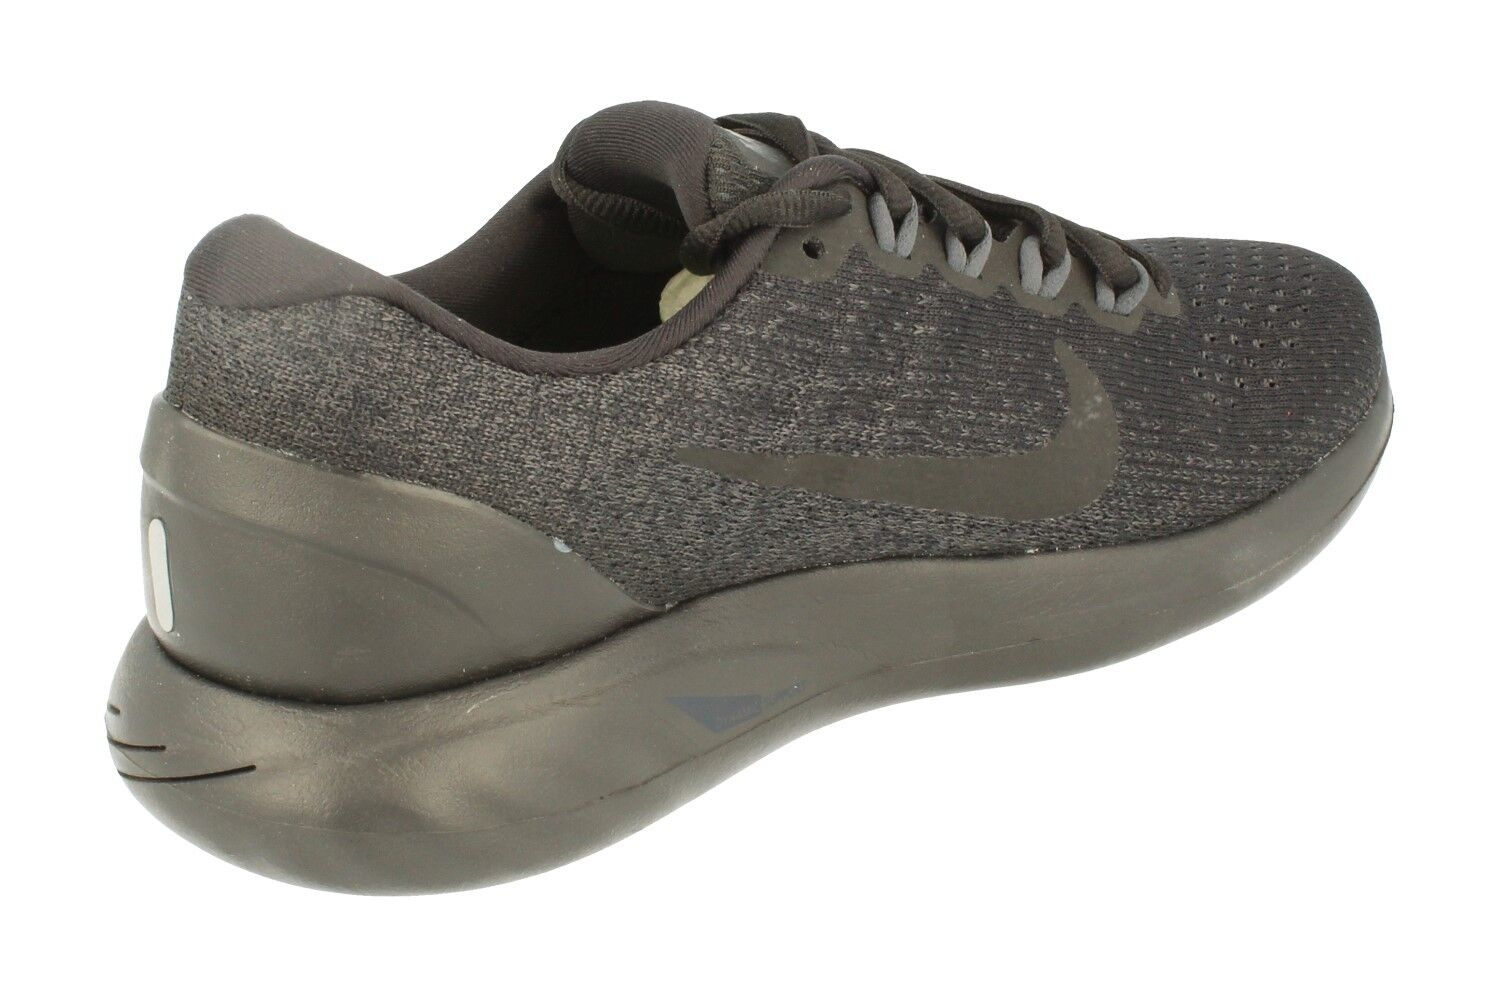 Nike Womens Lunarglide Lunarglide Lunarglide 9 Running Trainers 904716 Sneakers shoes 007 8a10f4